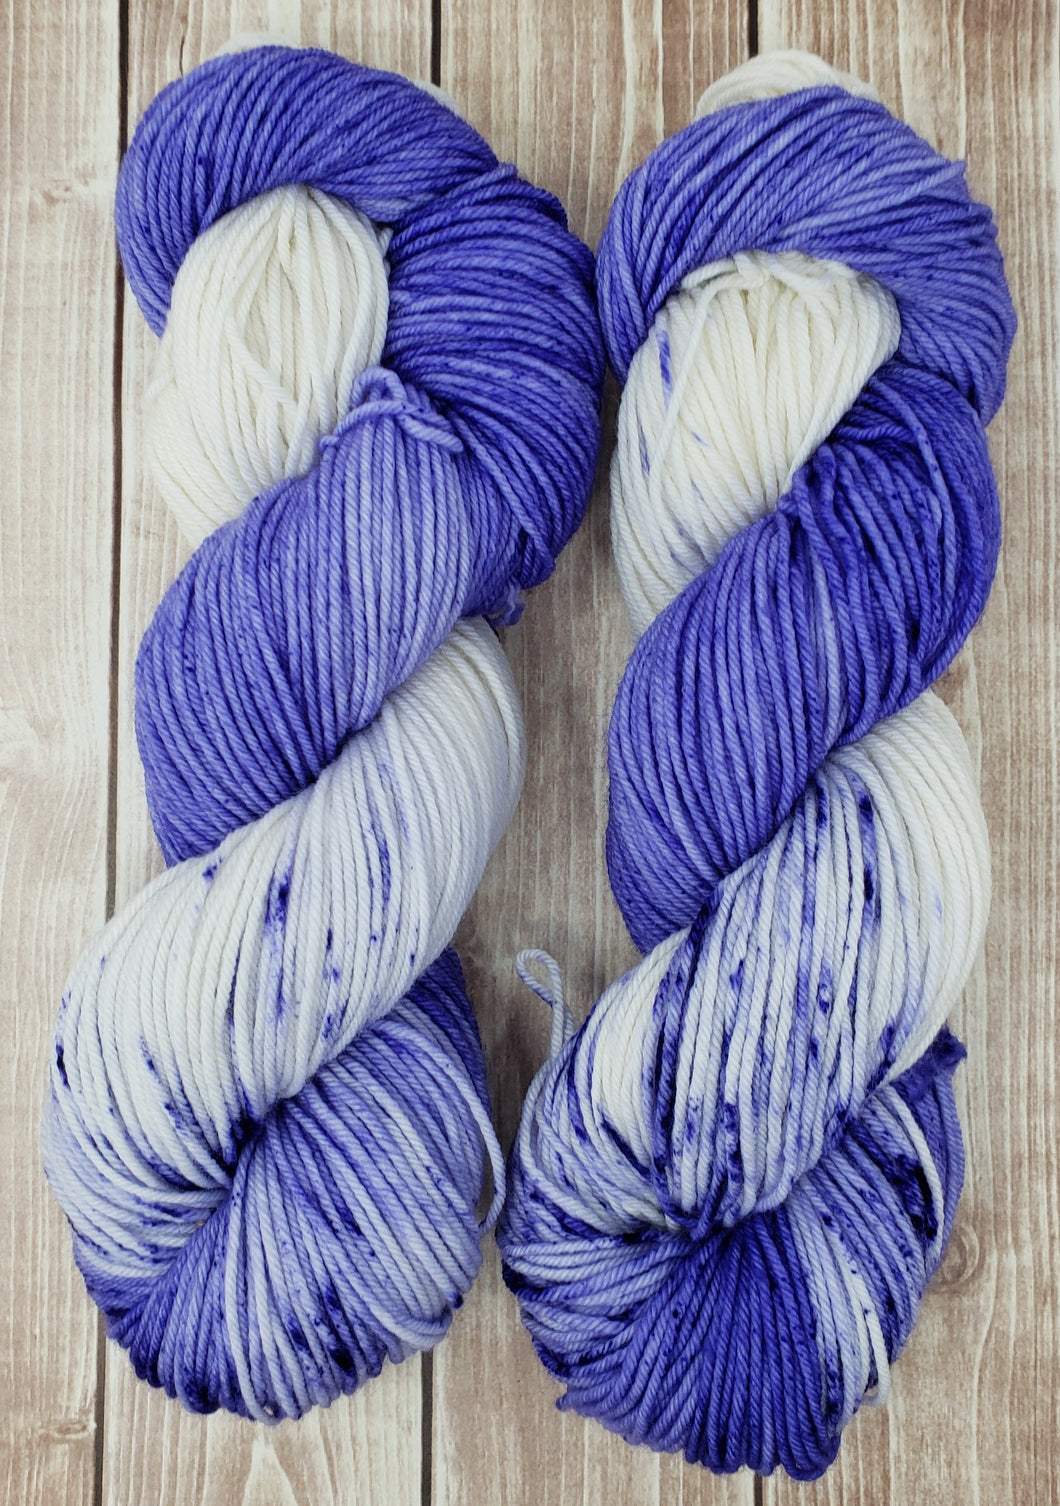 Purple Passion - Sock/Fingering - DK Weight - Sport Weight - Hand Dyed Yarn